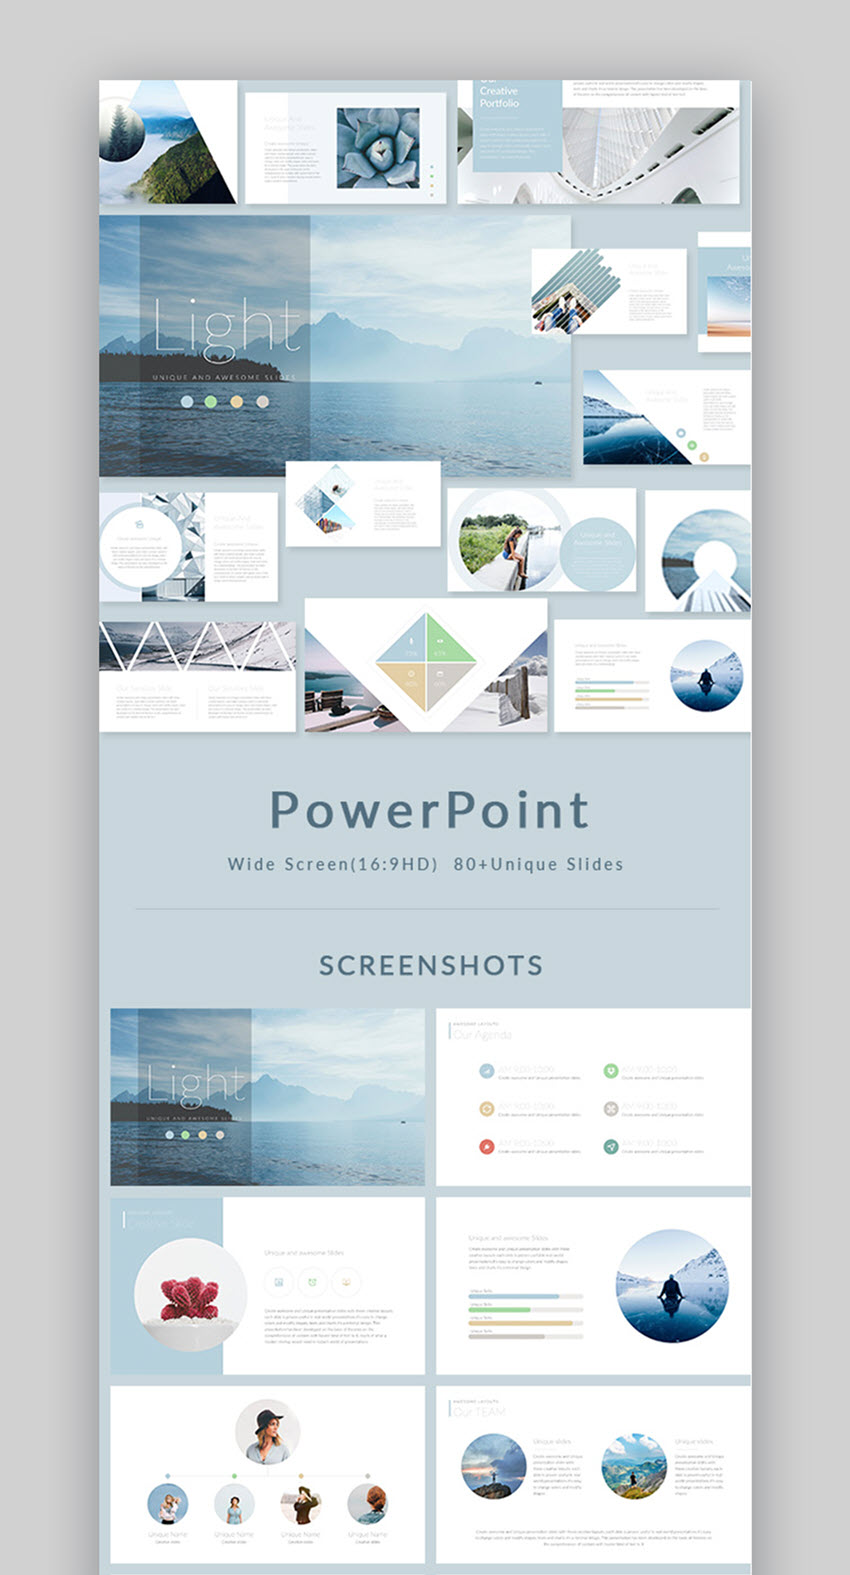 Light PowerPoint Presentation